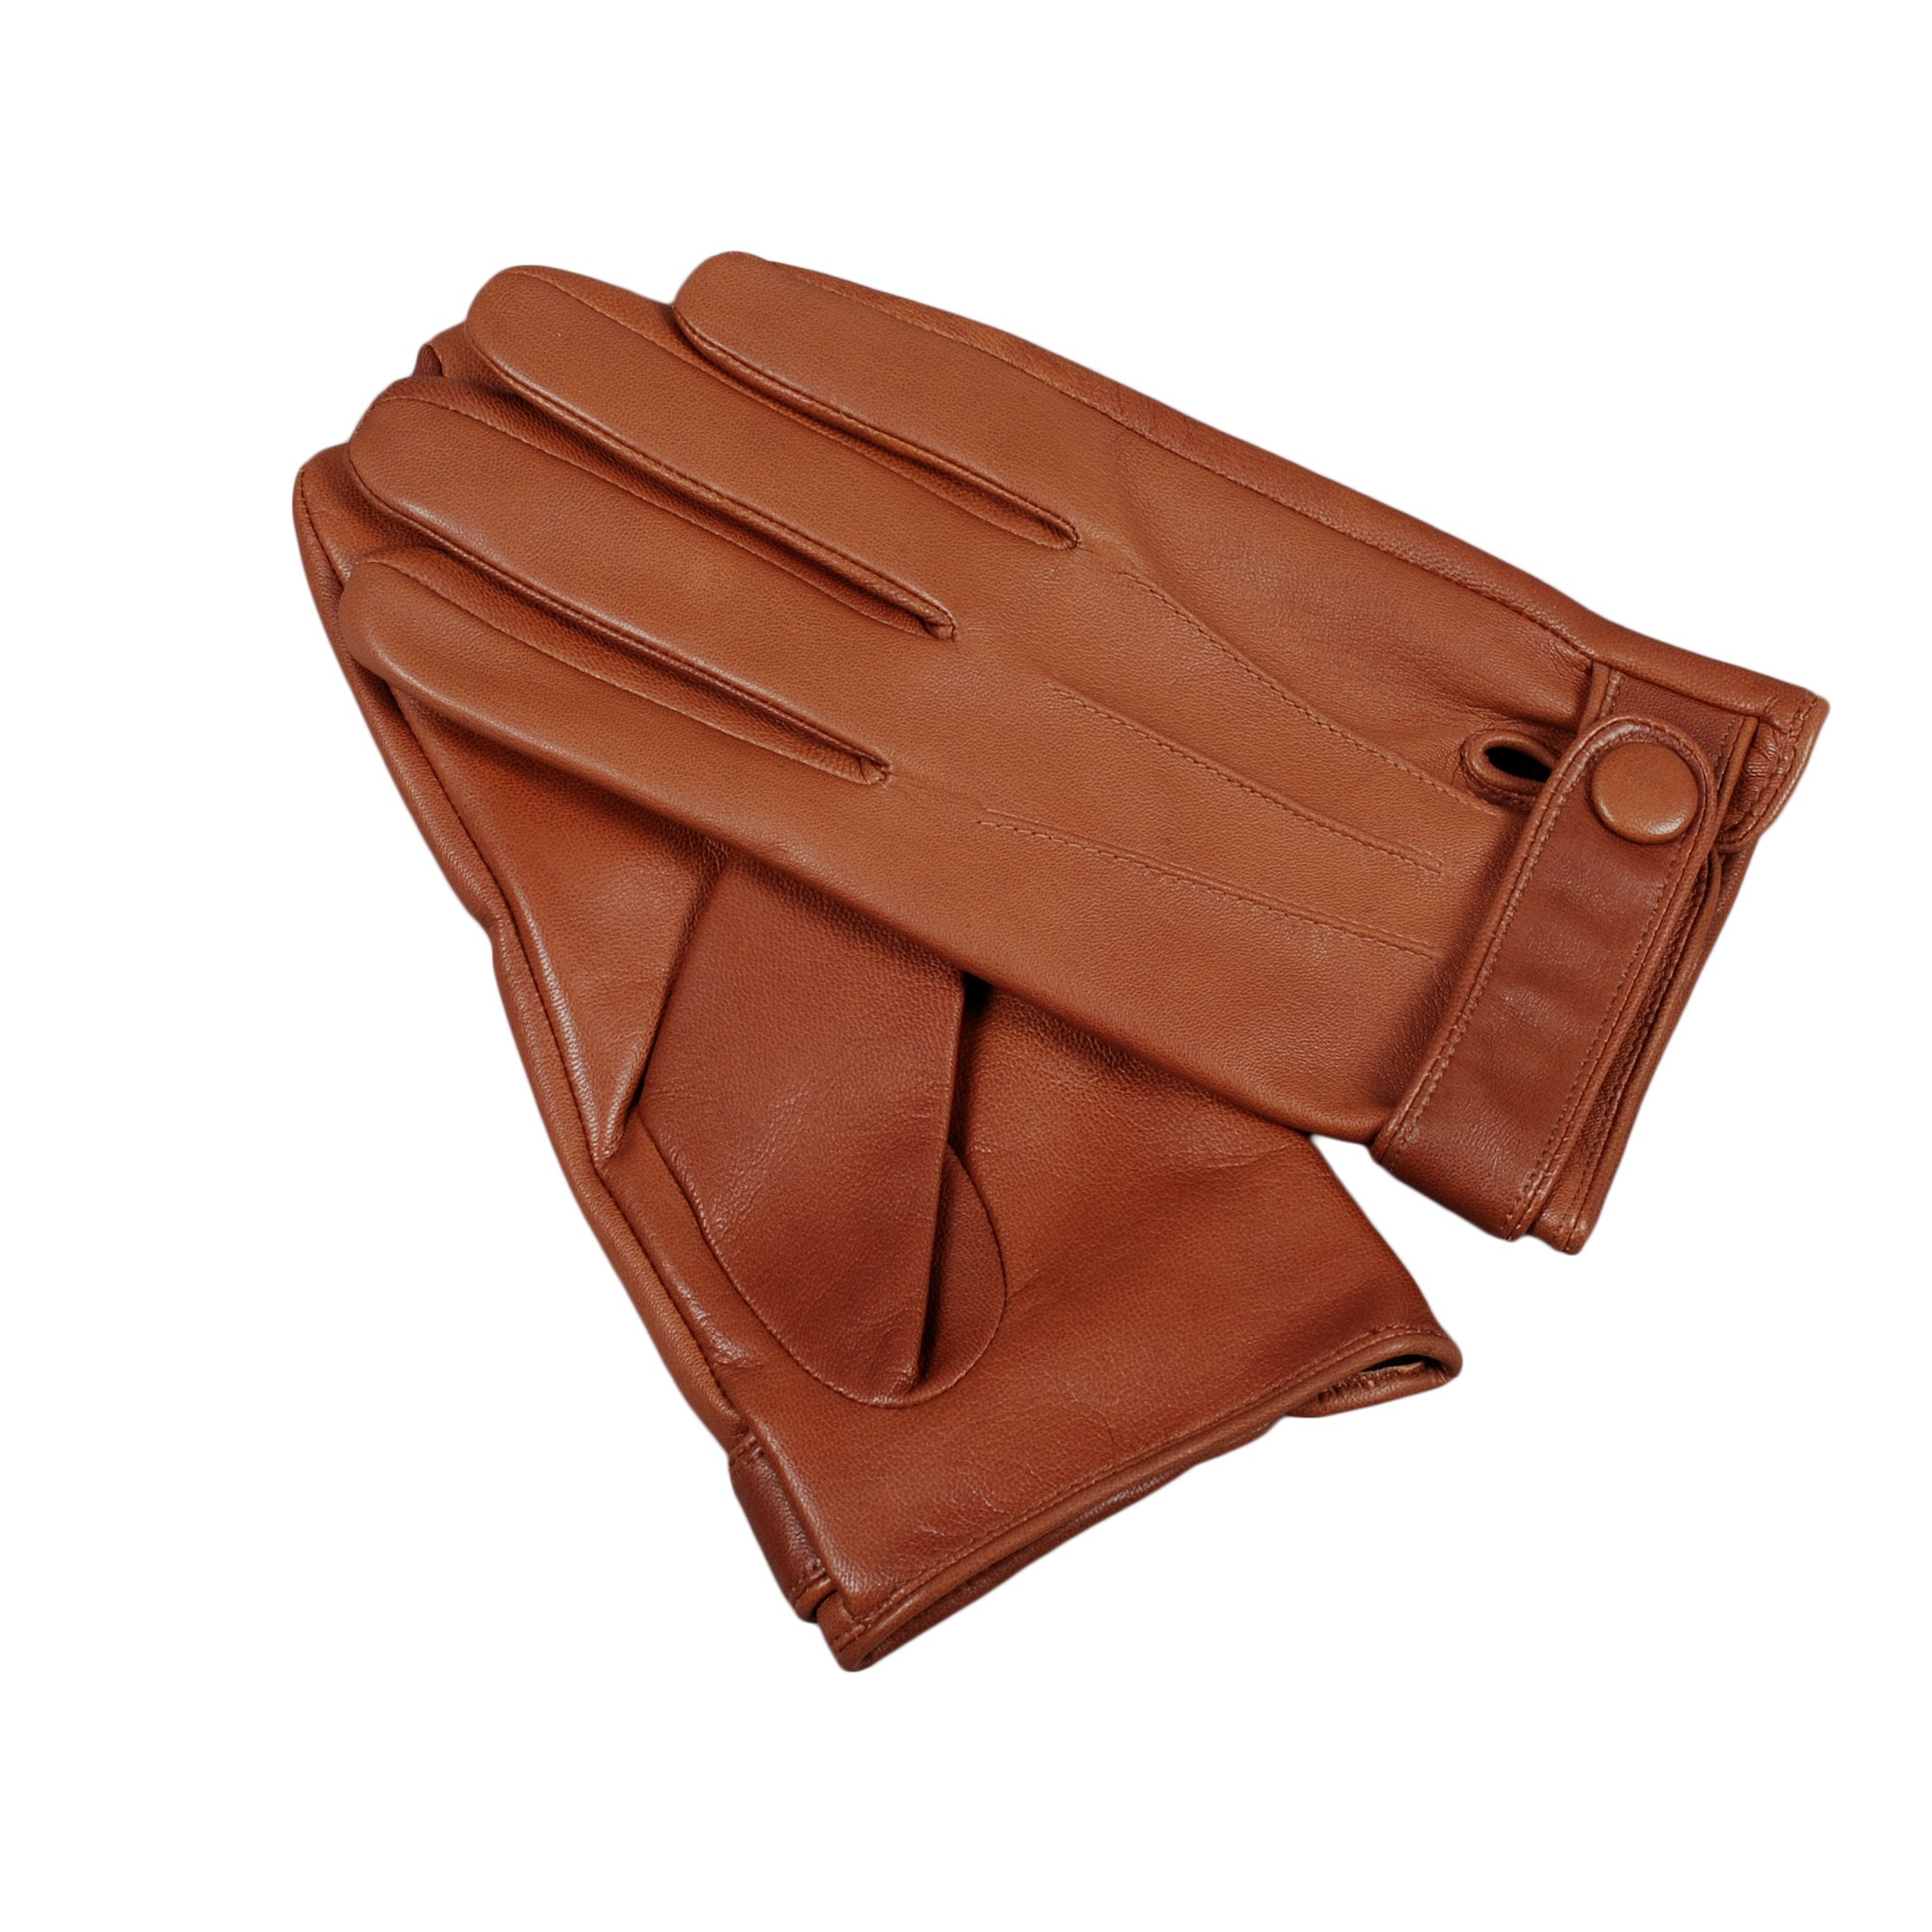 Men's Warm Gloves, Magelier Winter Sheepskin Leather Daily Dress Driving Gloves, Large, Brown